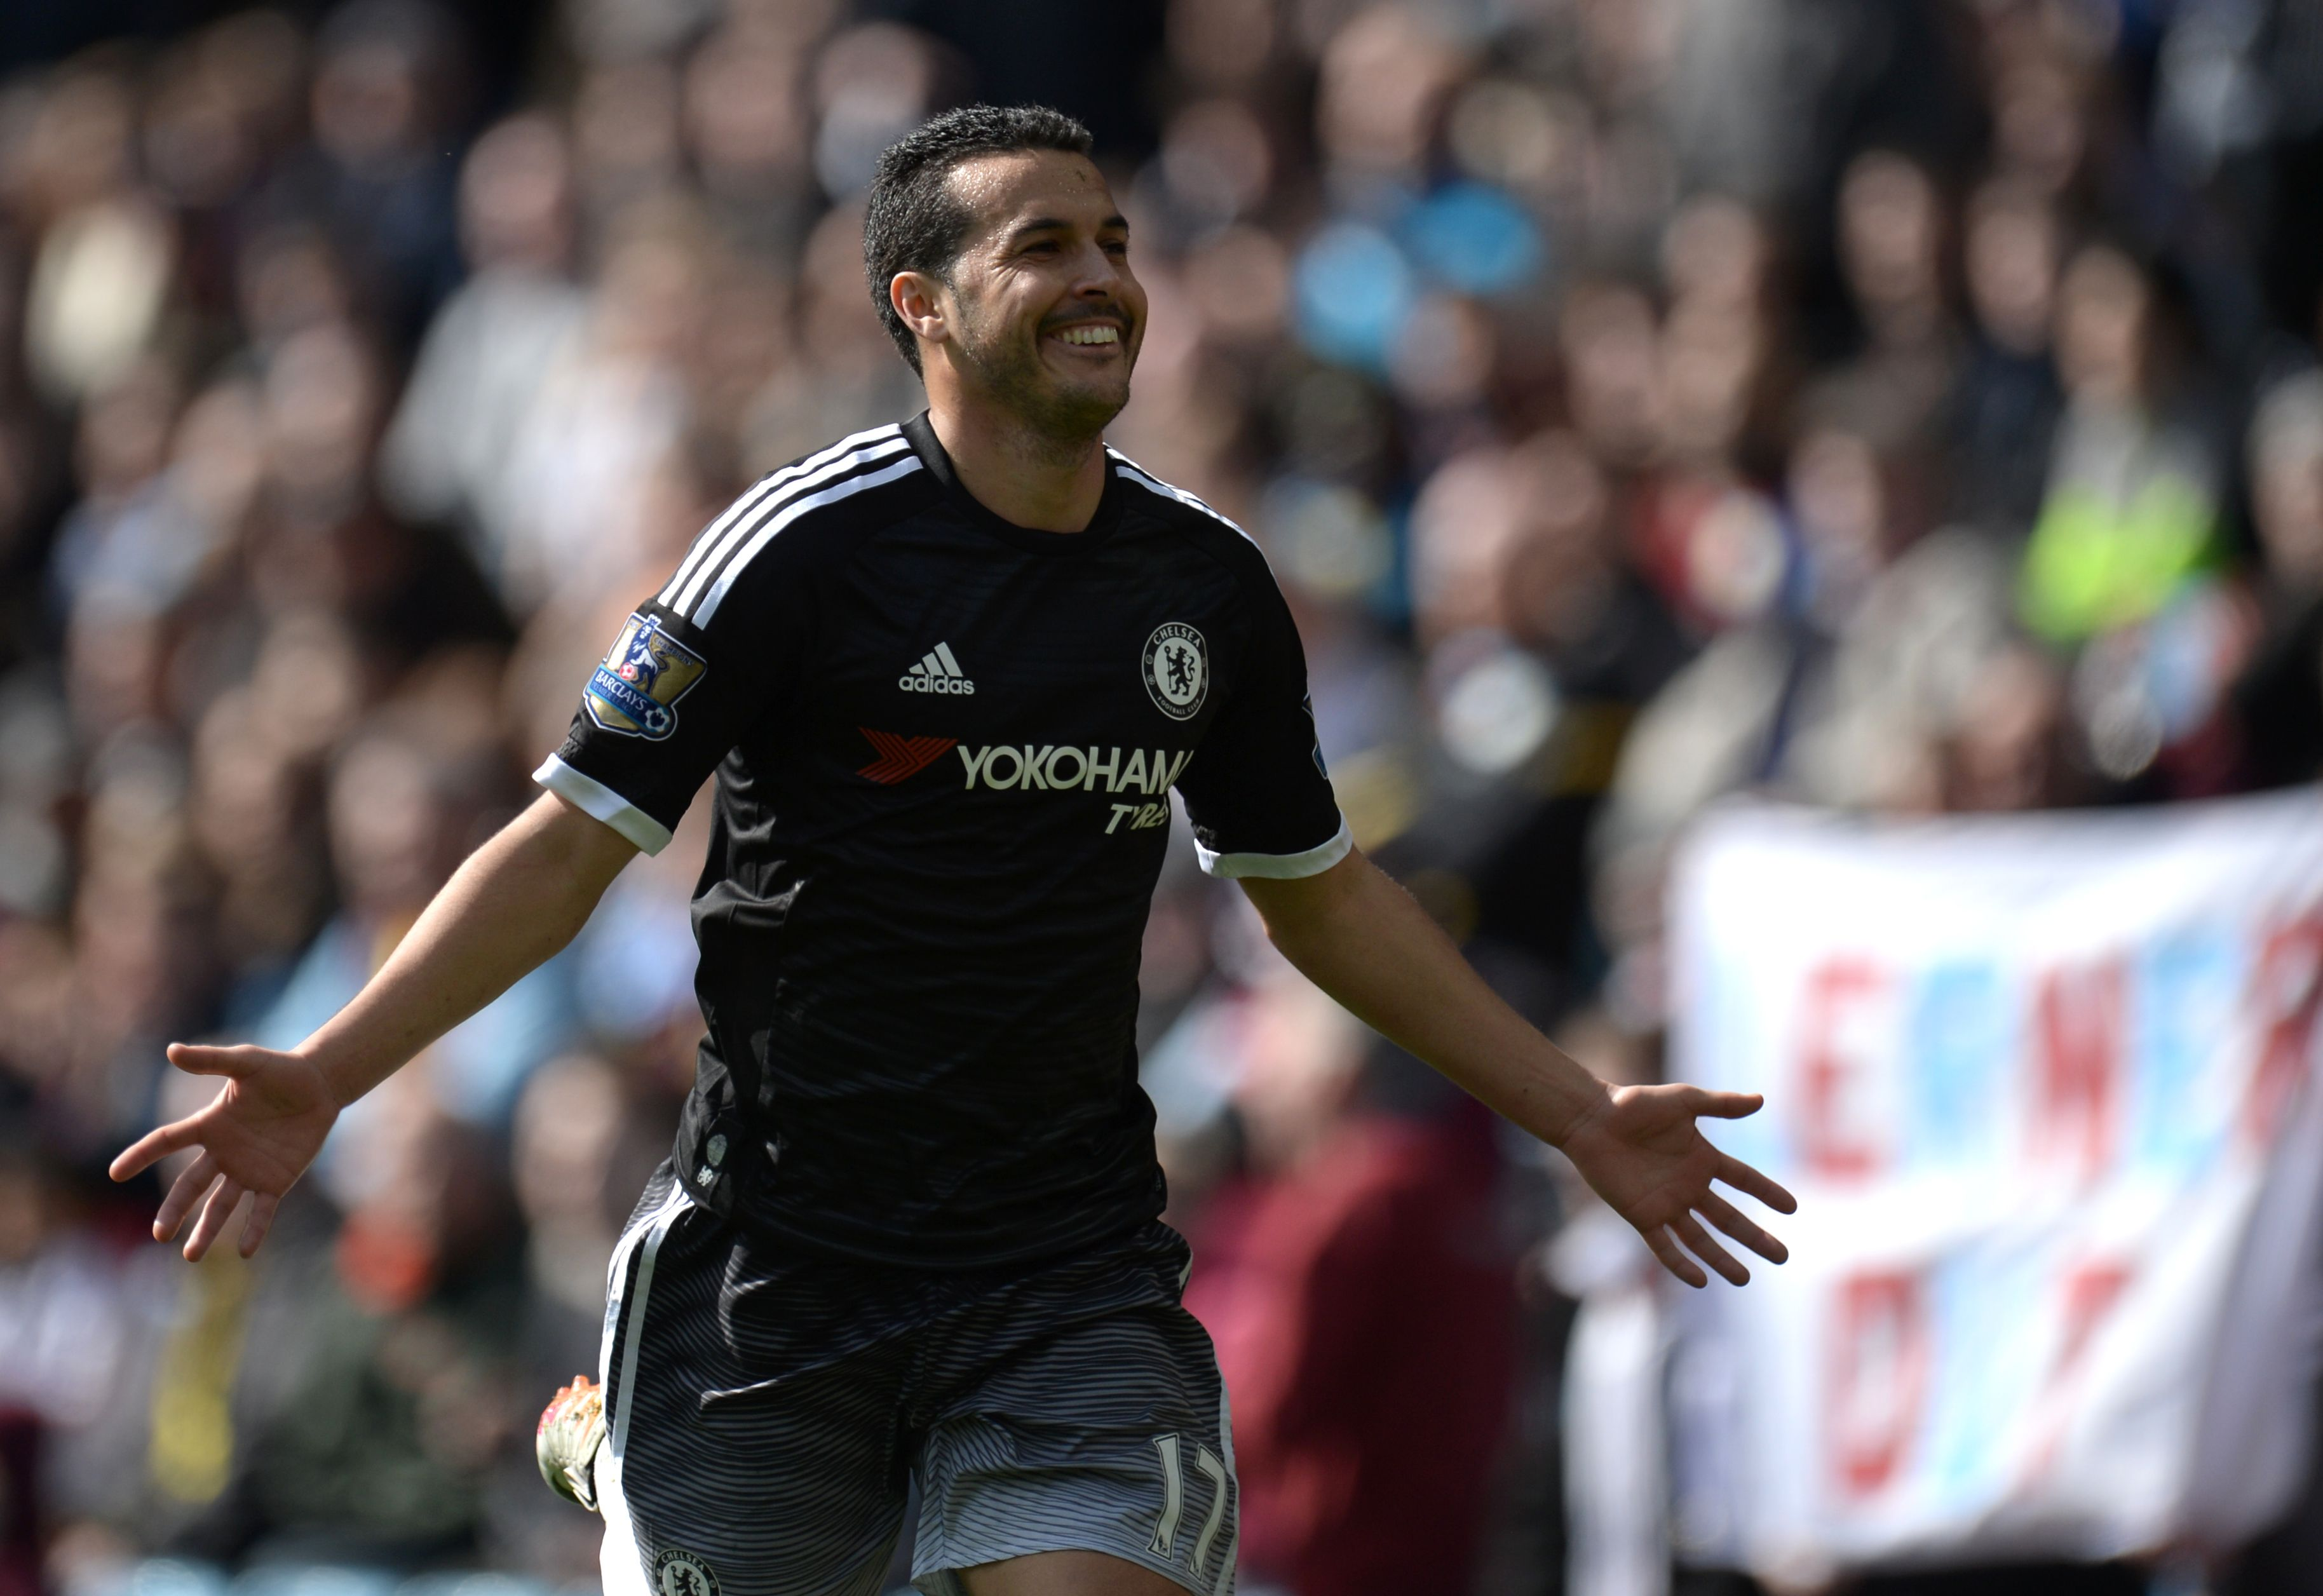 Chelsea's Spanish midfielder Pedro celebrates after scoring his second goal and Chelsea's fourth during the English Premier League football match between Aston Villa and Chelsea at Villa Park in Birmingham, central England on April 2, 2016. / AFP / OLI SCARFF / RESTRICTED TO EDITORIAL USE. No use with unauthorized audio, video, data, fixture lists, club/league logos or 'live' services. Online in-match use limited to 75 images, no video emulation. No use in betting, games or single club/league/player publications. / (Photo credit should read OLI SCARFF/AFP/Getty Images)